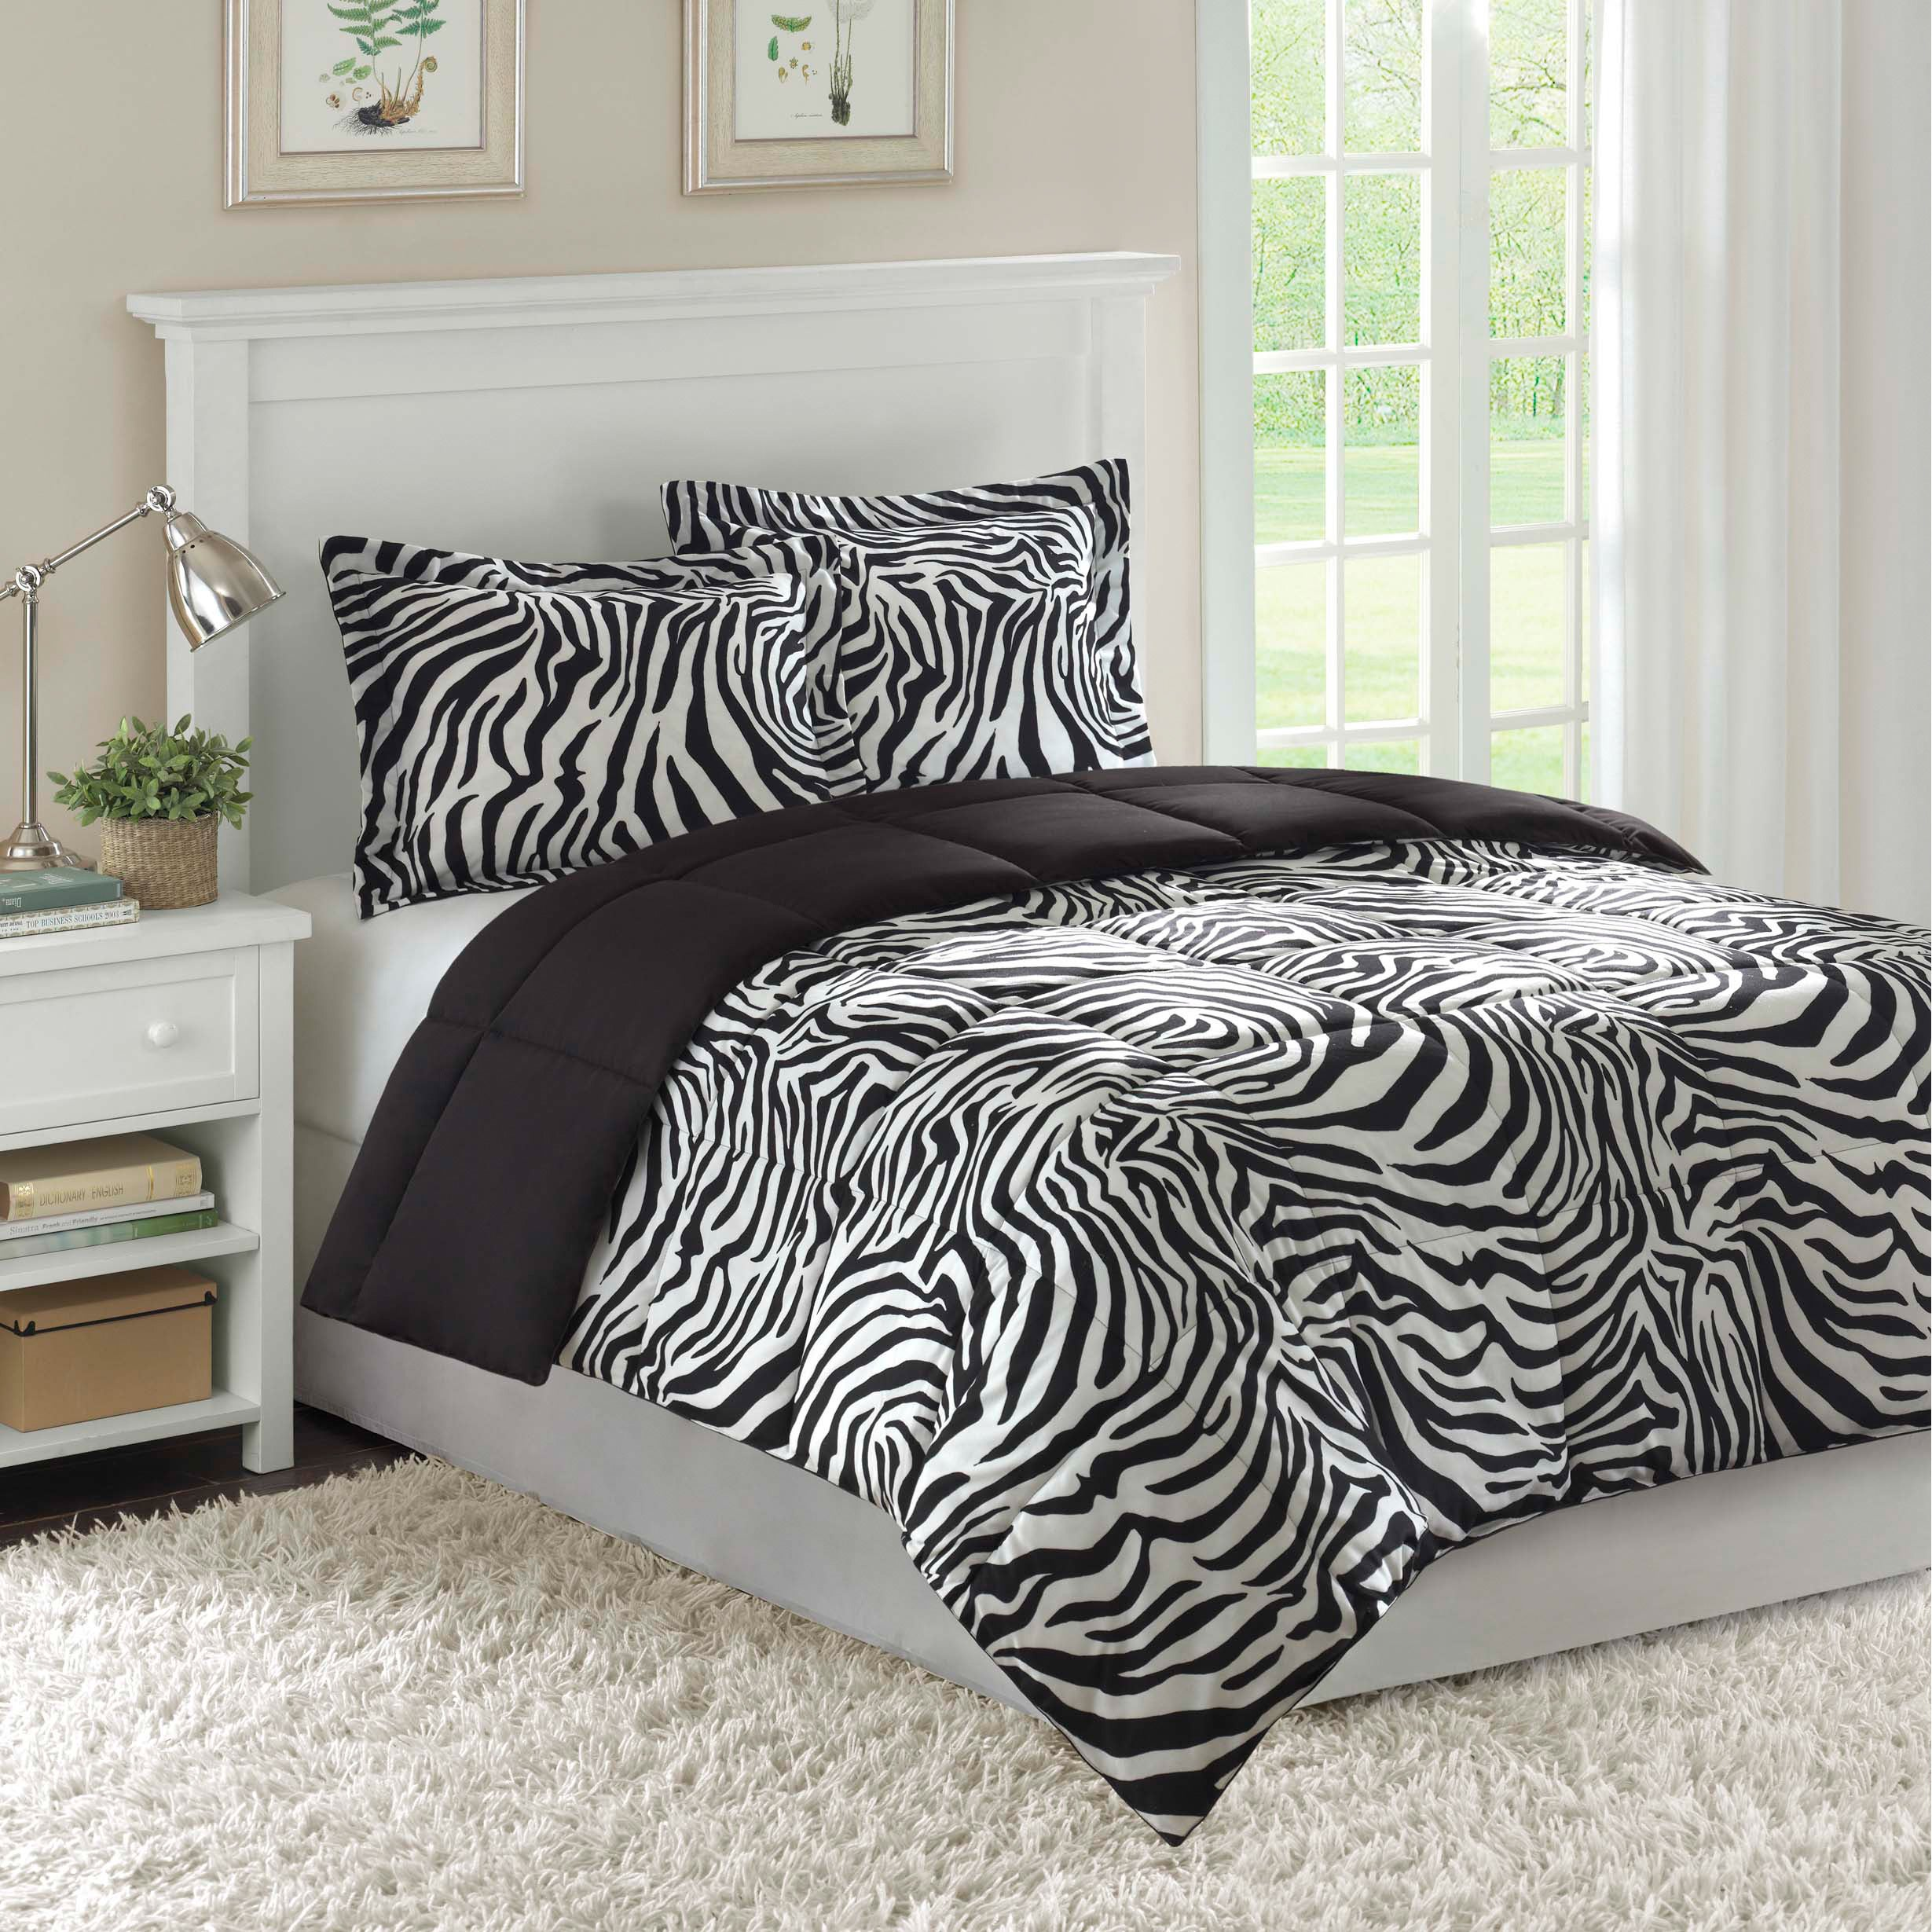 Home Essence Reversible Zebra Full/ Queen-size 3-piece Down Alternative Comforter and Sham Set at Sears.com